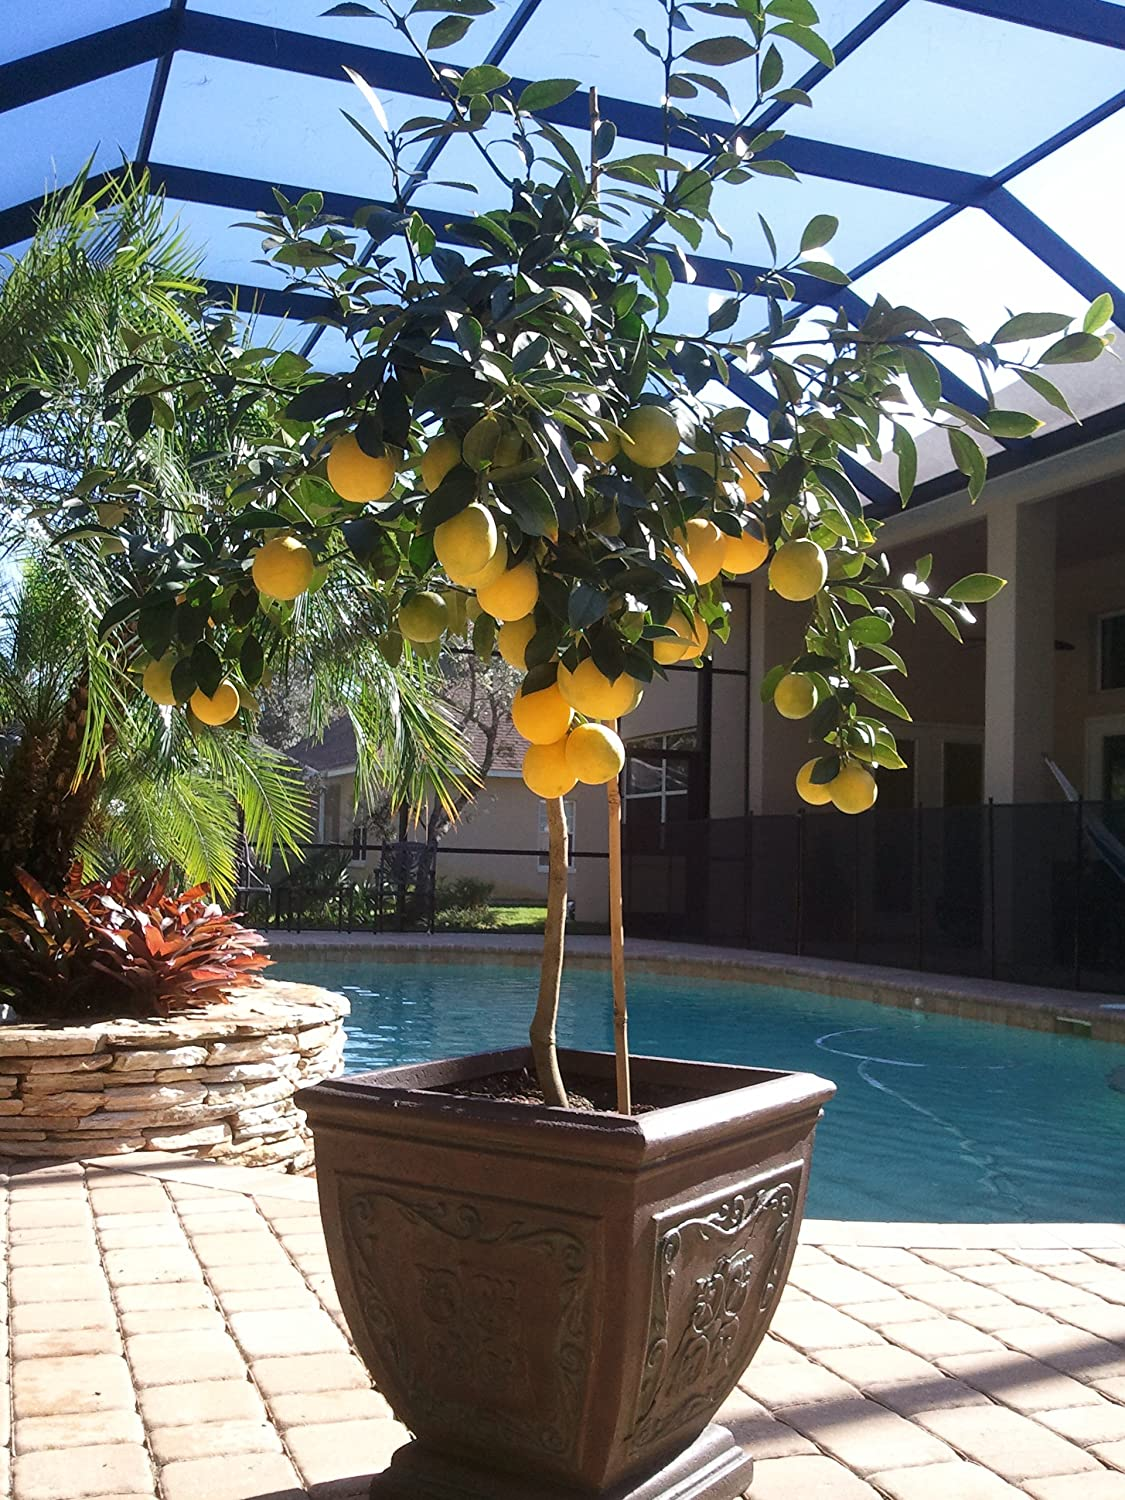 amazoncom brighter blooms improved meyer lemon tree up to 4 ft tall get fruit 1st year dwarf fruit tree with sweet lemons live potted